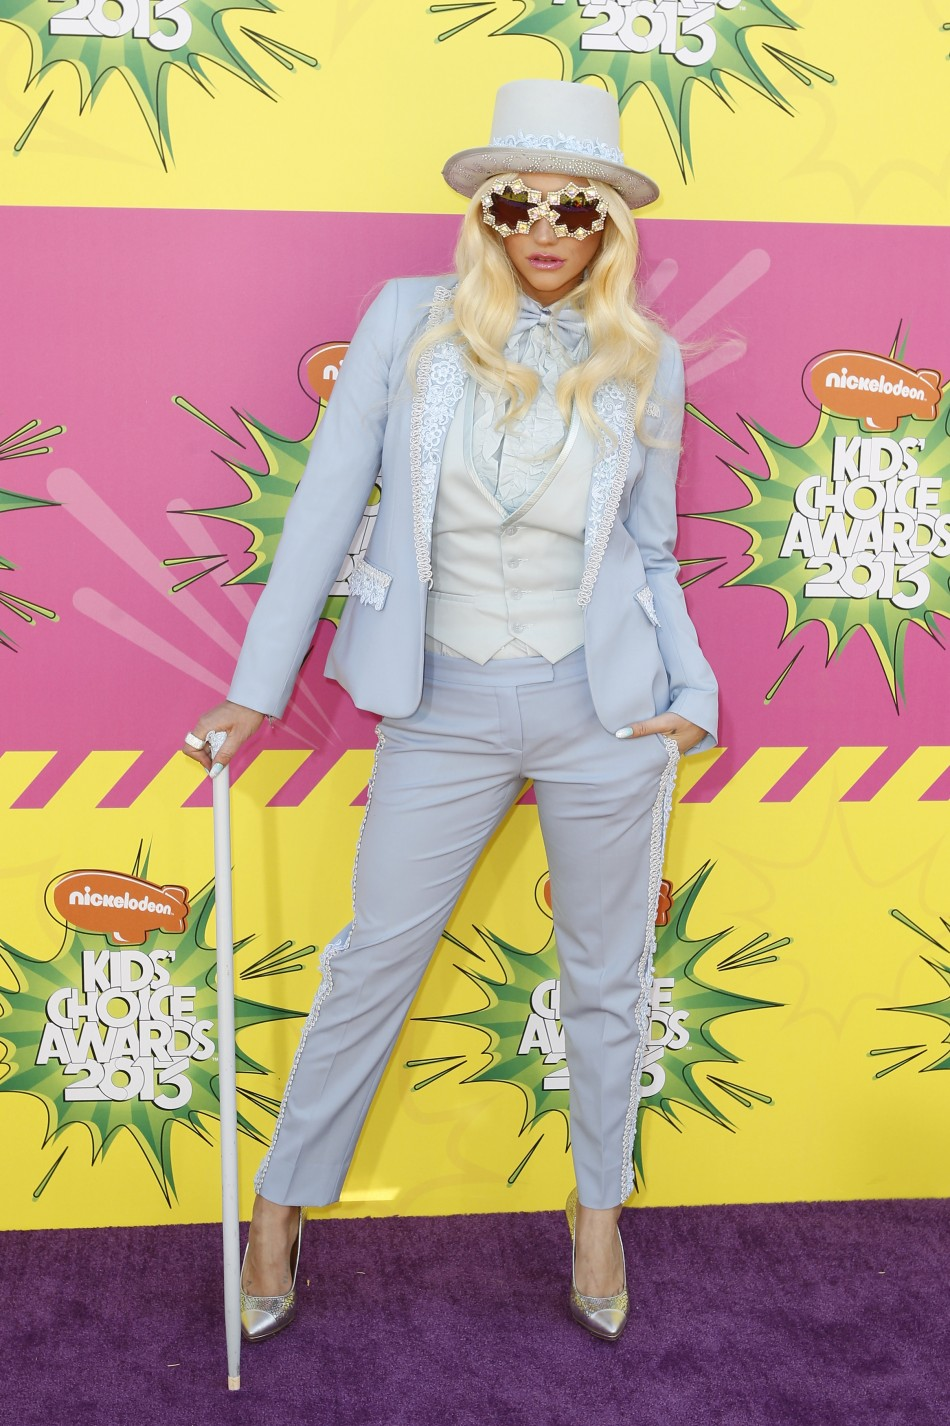 Singer Keha arrives at the 2013 Kids Choice Awards in Los Angeles